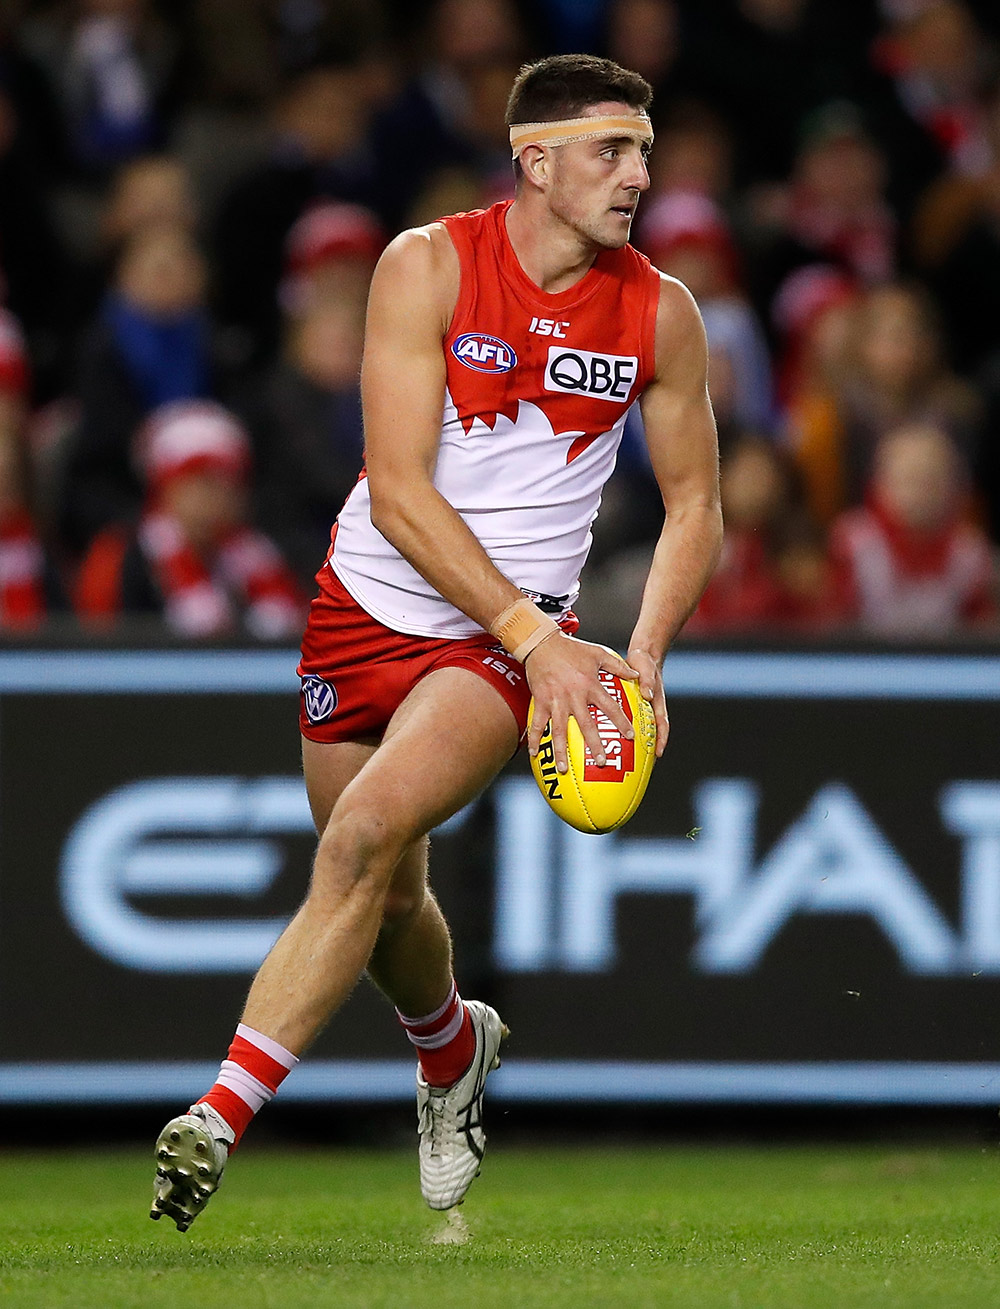 Colin O'Riordan has signed a new contract with the Sydney Swans. Picture: Sydney Swans